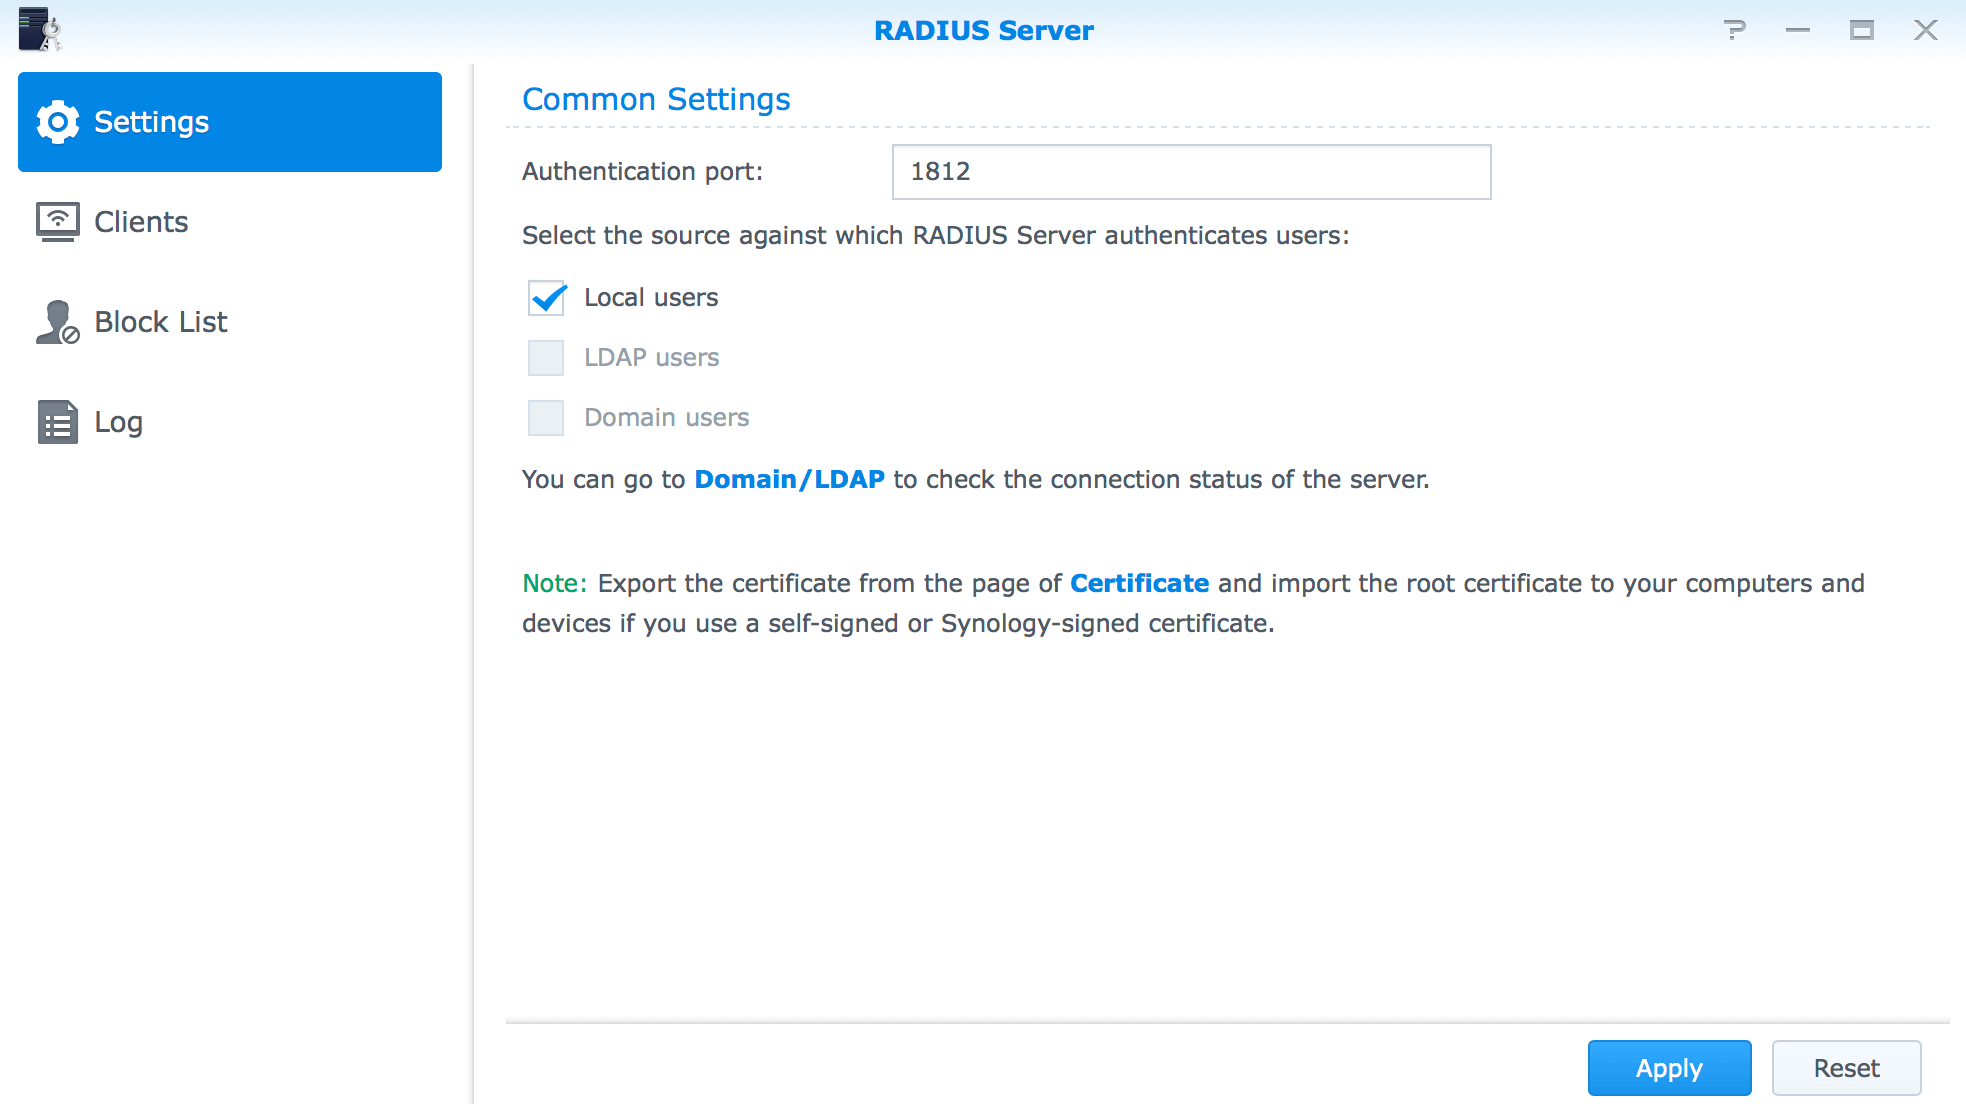 Install the RADIUS Server on a Synology - krypted